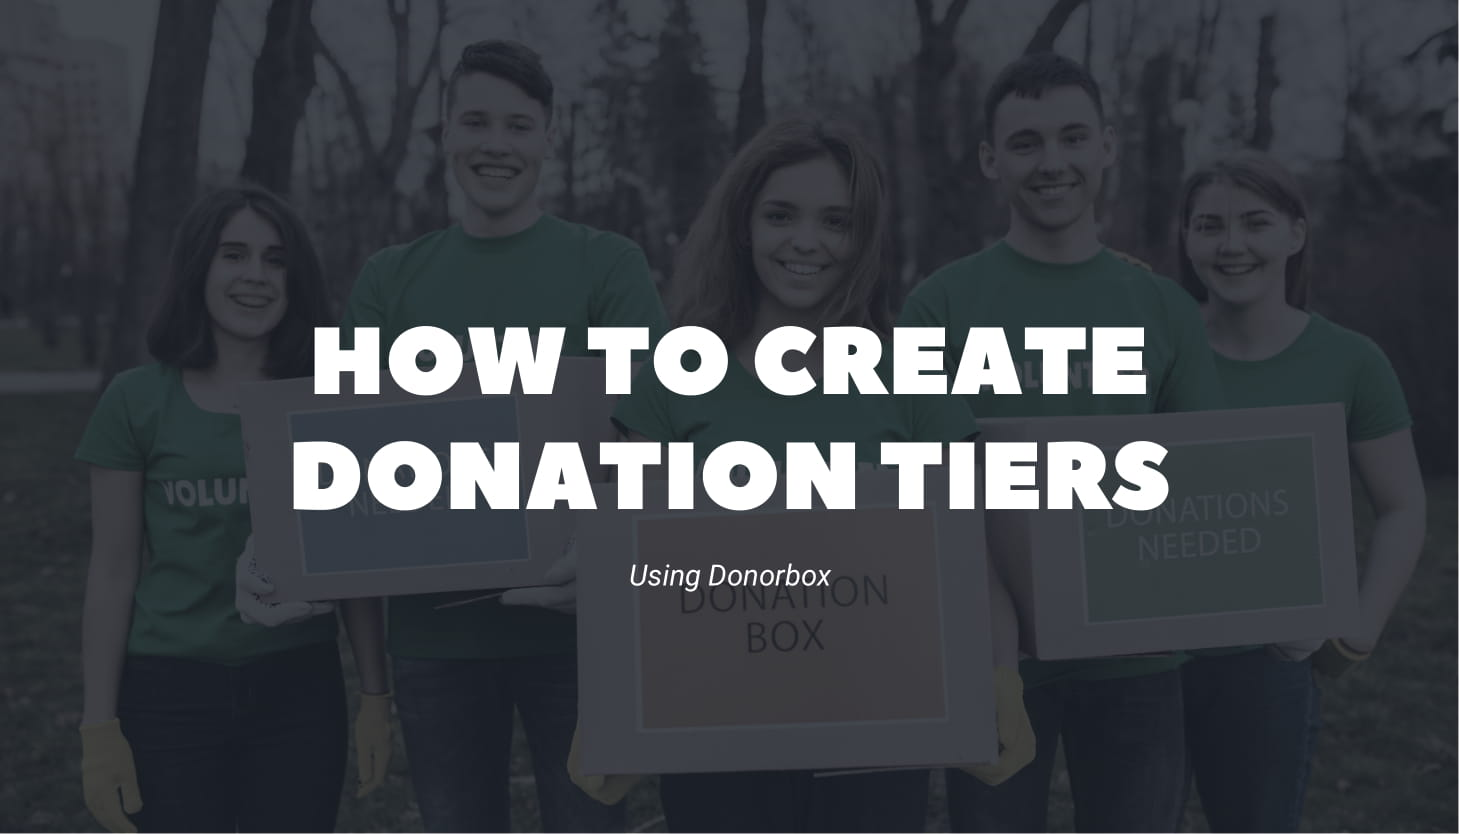 How to Create Donation Tiers Using Donorbox